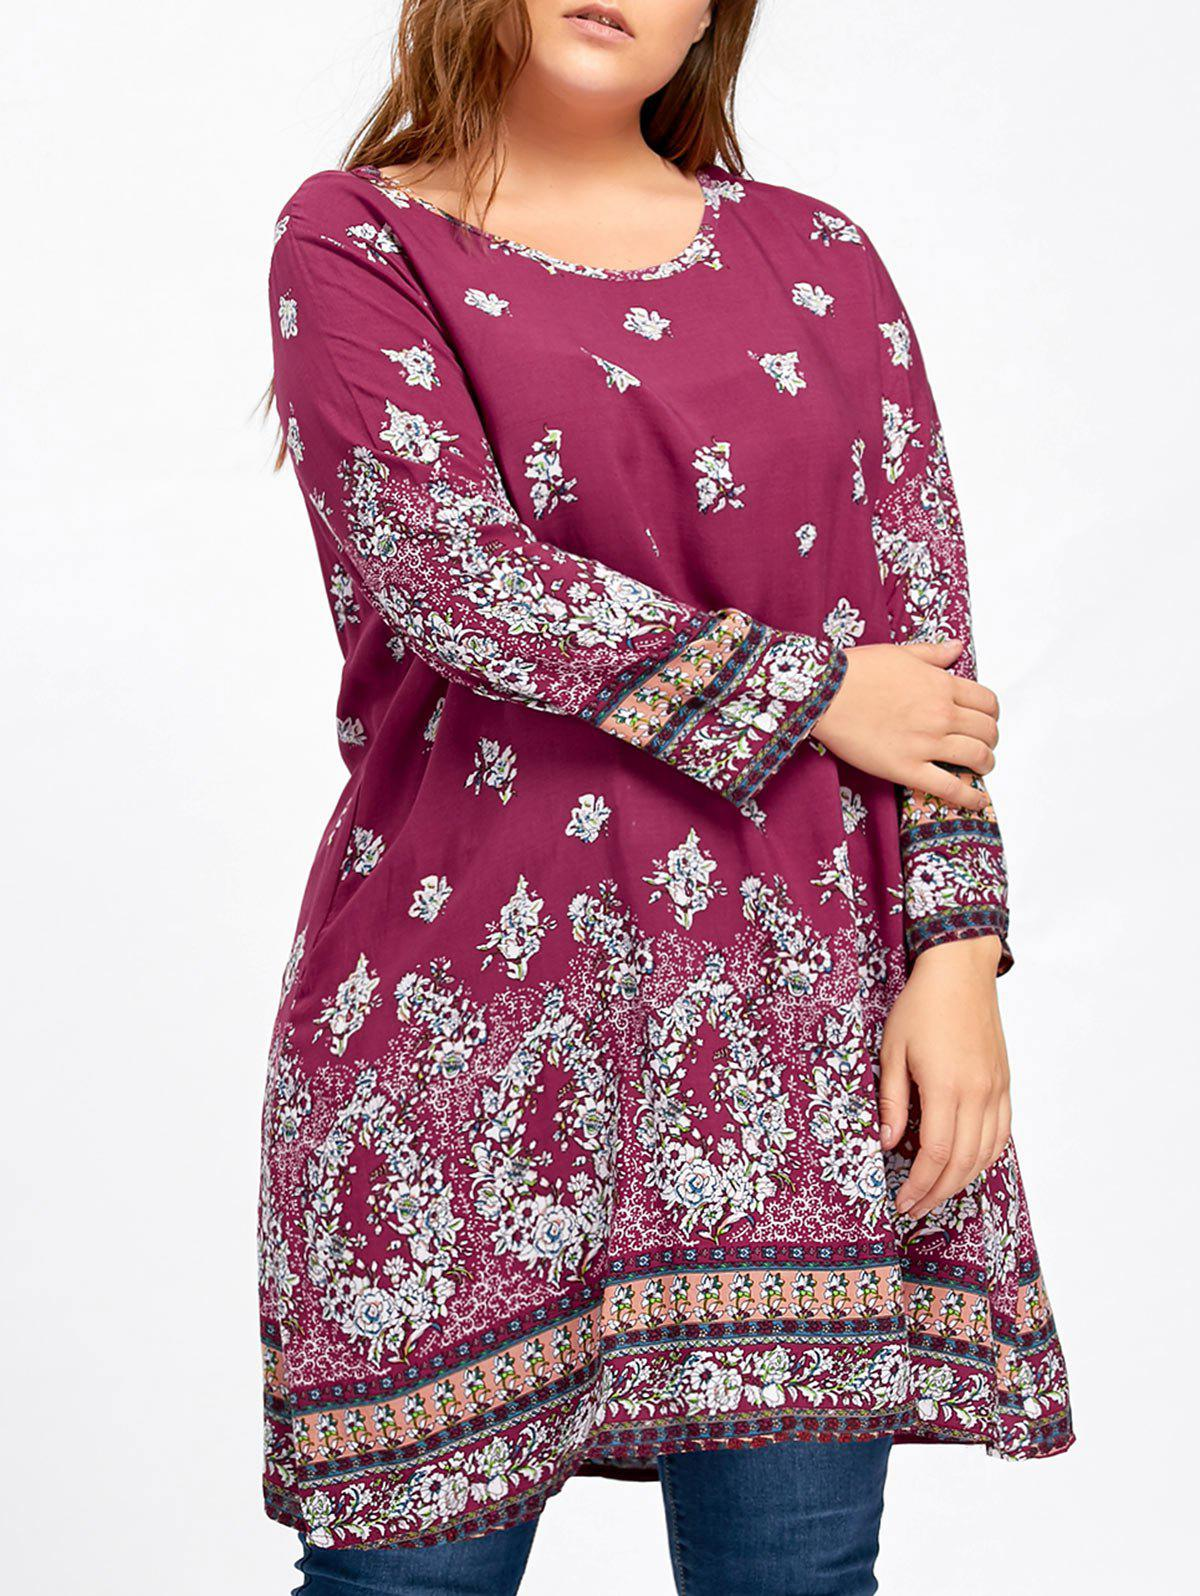 Plus Size Longline Floral Print BlouseWOMEN<br><br>Size: 5XL; Color: ROSE RED; Material: Polyester; Shirt Length: Long; Sleeve Length: Full; Collar: Round Neck; Style: Casual; Season: Fall,Spring; Pattern Type: Floral; Weight: 0.2150kg; Package Contents: 1 x Blouse;